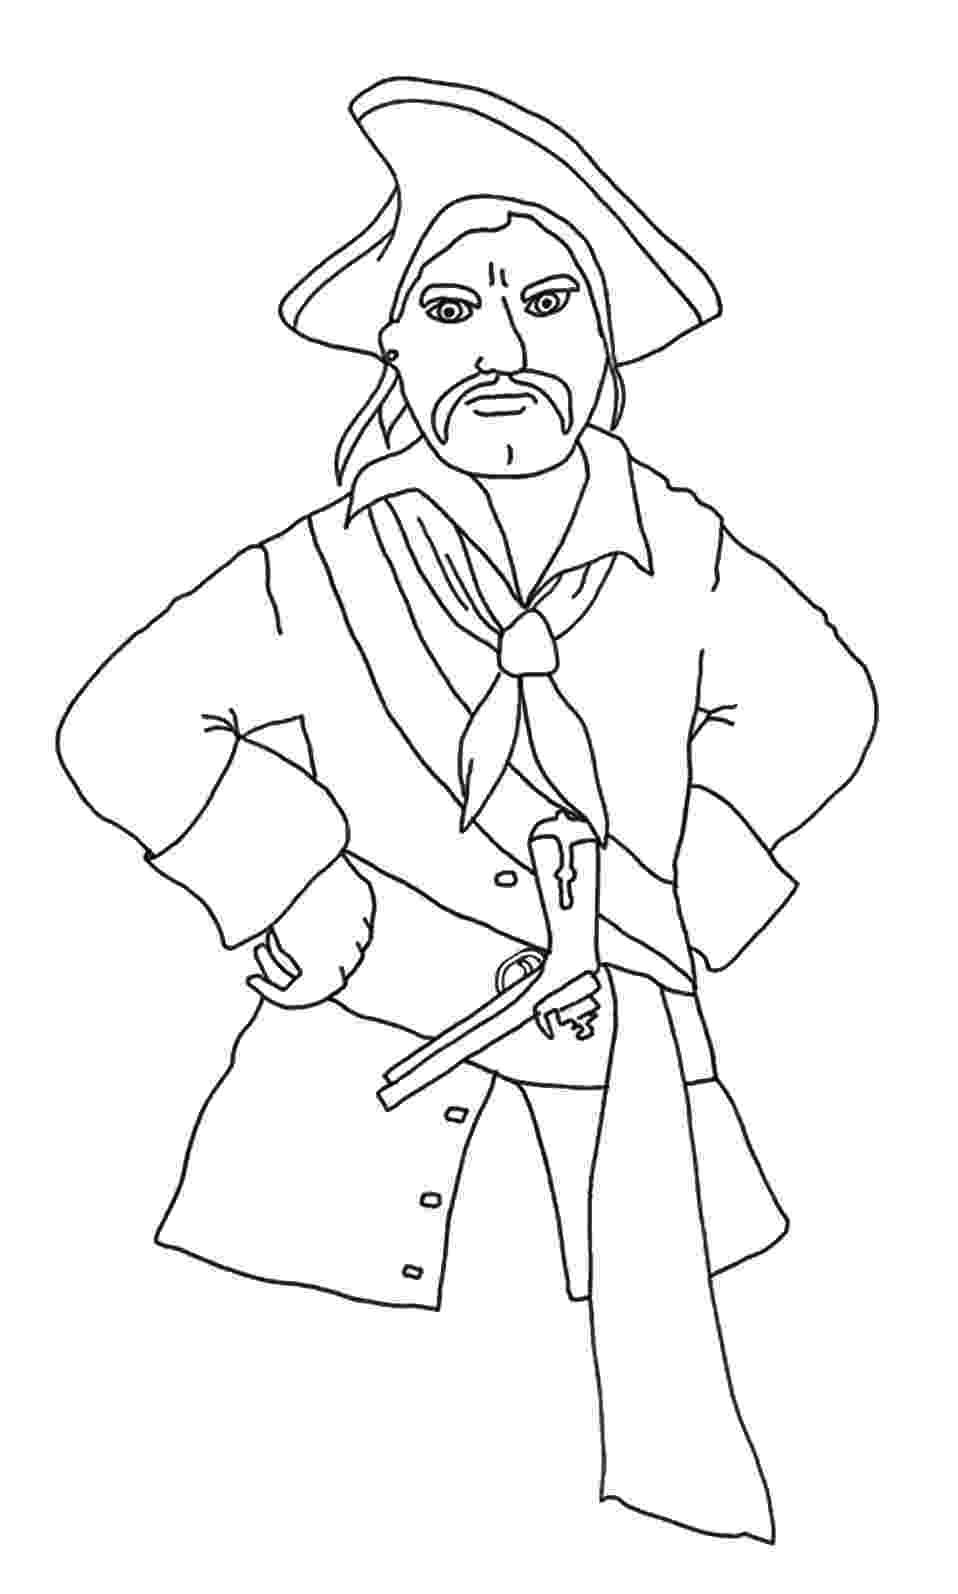 pirates coloring pages free printable pirate coloring pages for kids pirates pages coloring